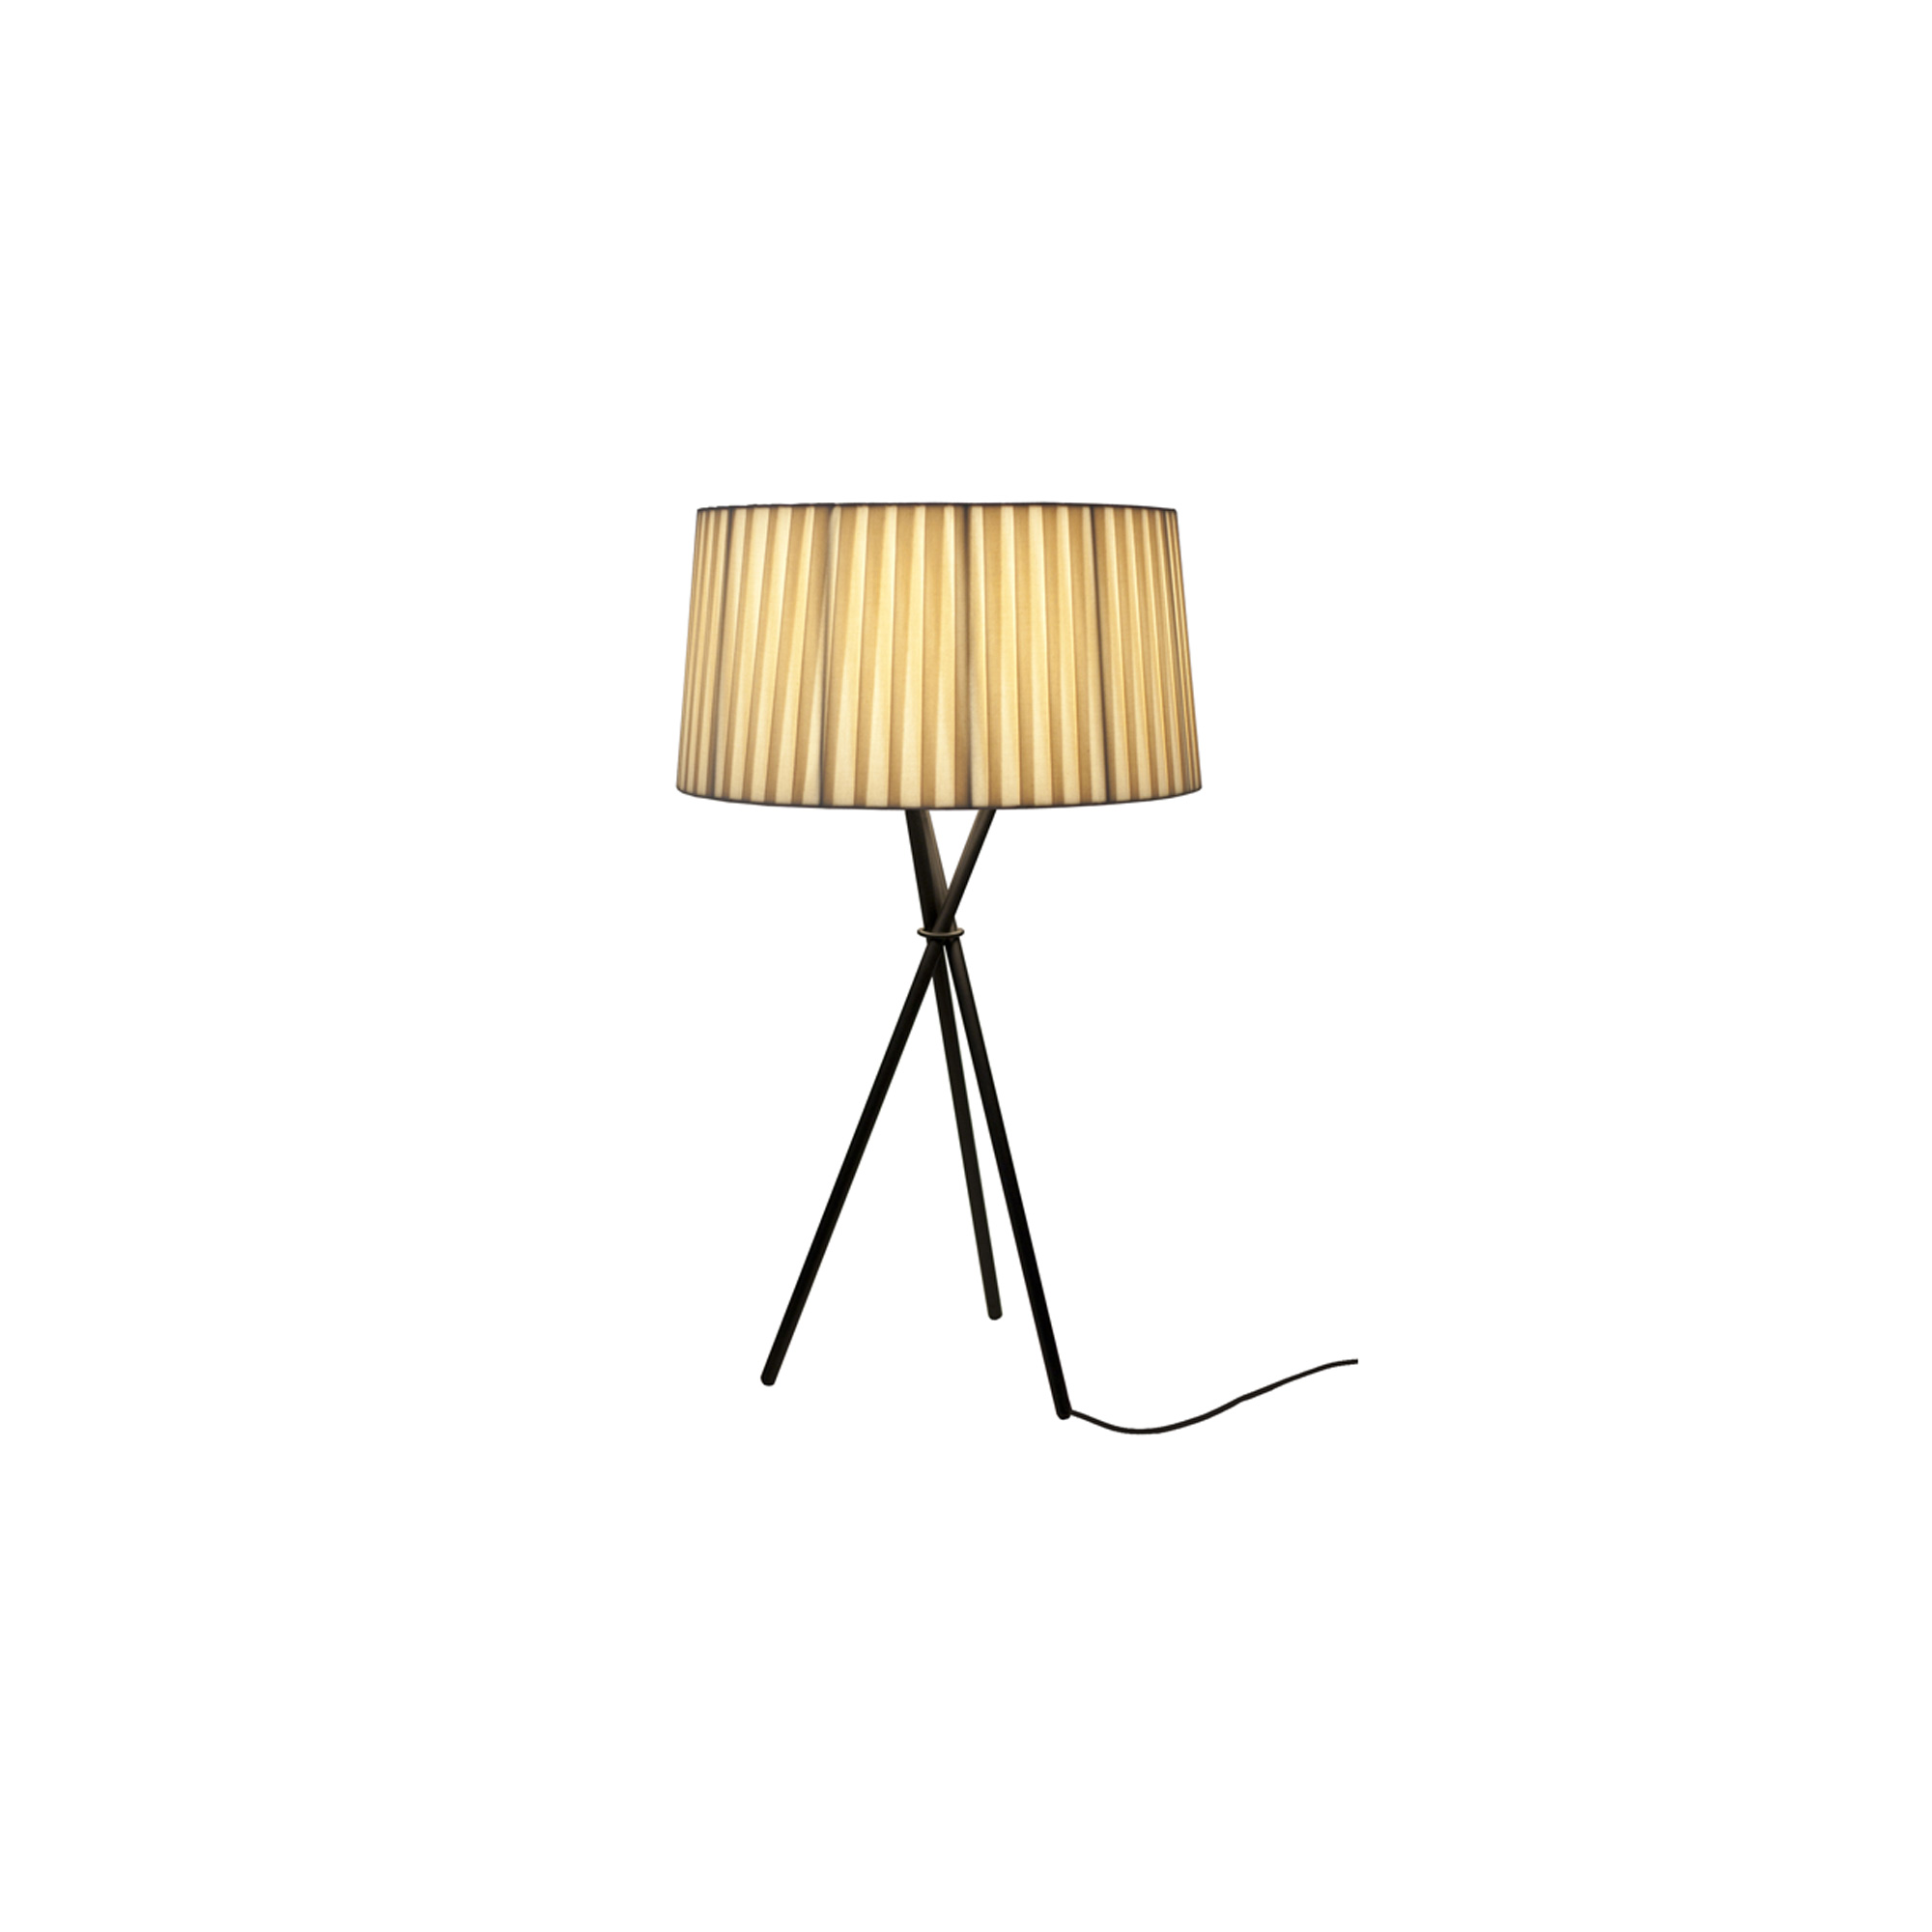 Tripode M3 Table Lamp - The Trípode M3 Table Lamp has a hand made lampshade made from banded ribbon wrapped around a conical frame with a base made from three tubular metal rods with a textured black finish. This lamp is perfect for adding a soft light to a room and the different lampshade colours mean that you can choose whichever colour is best for your space. 